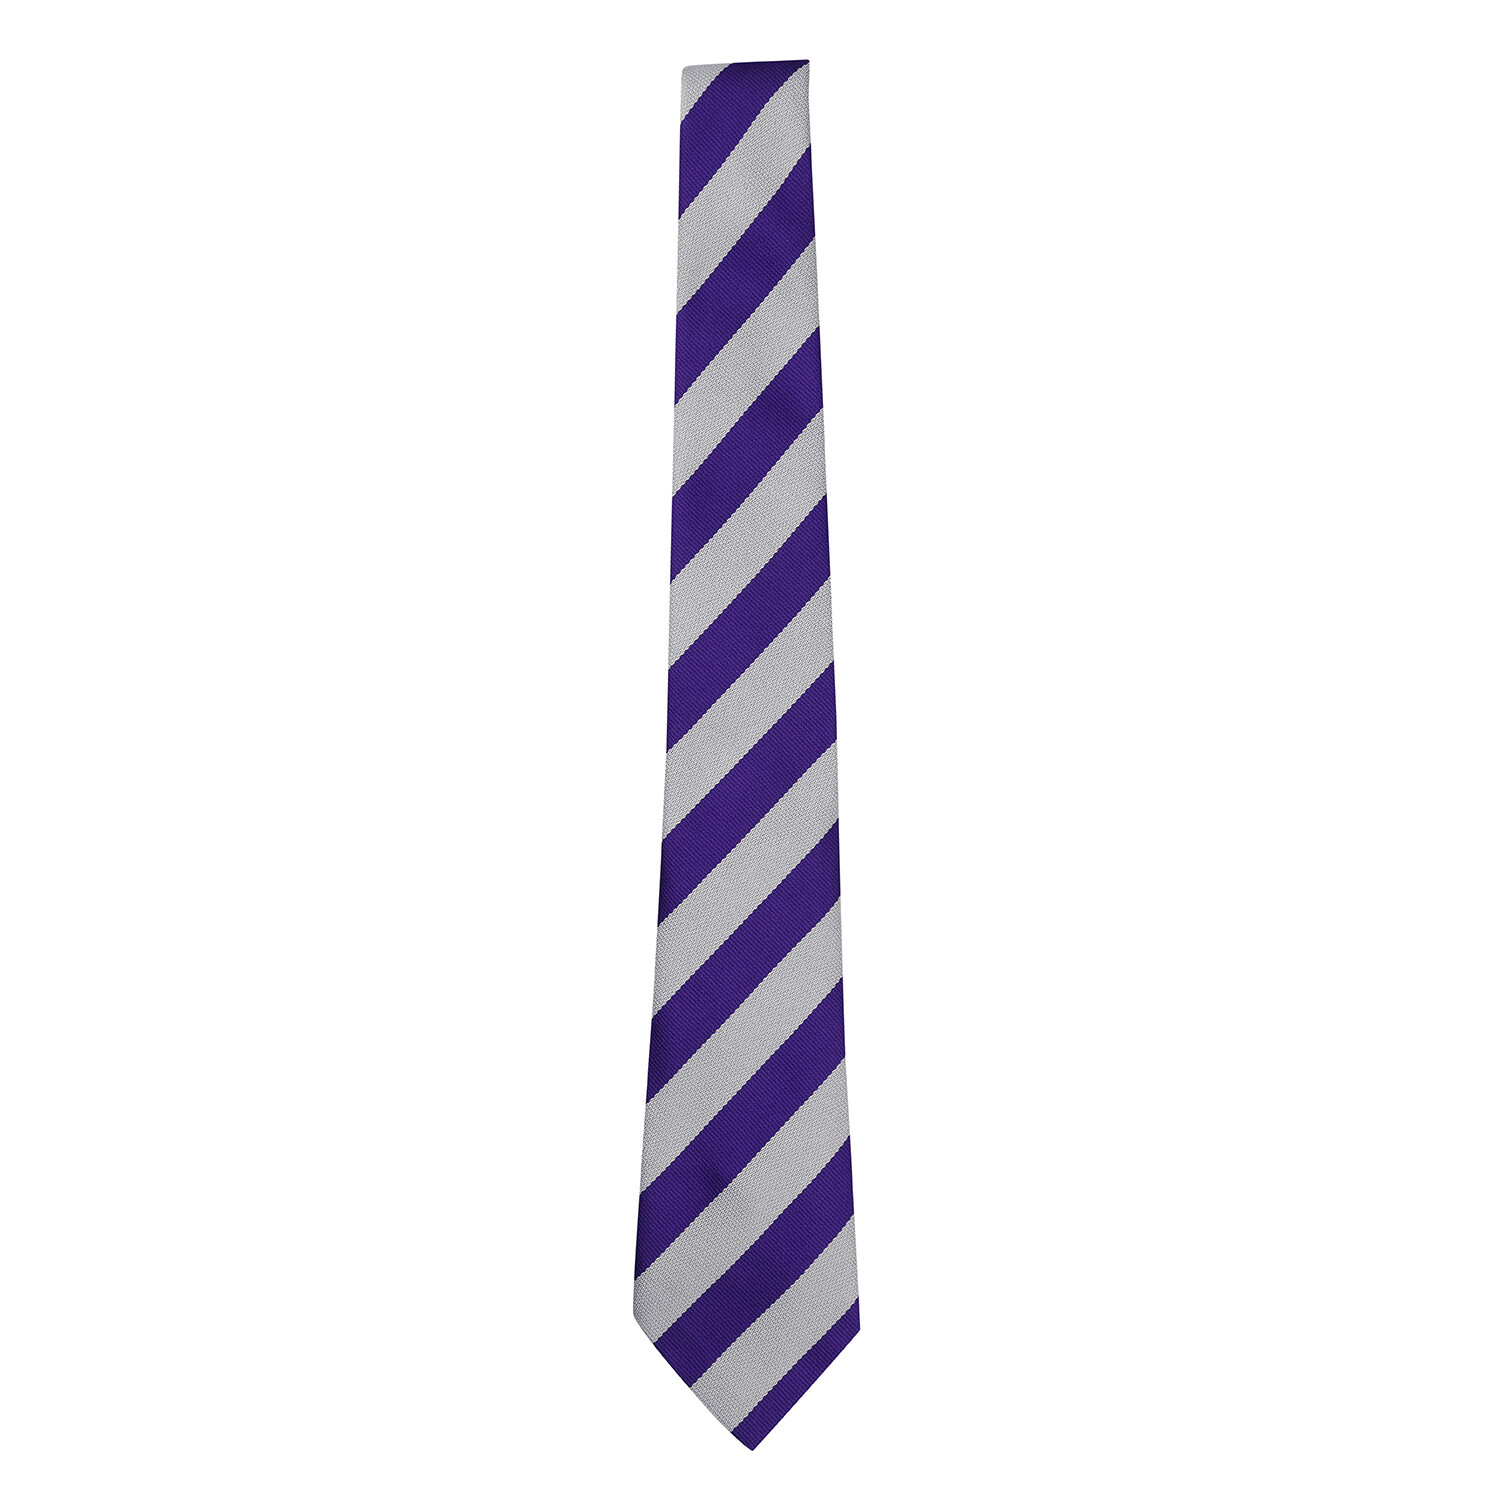 All Saints Primary School tie